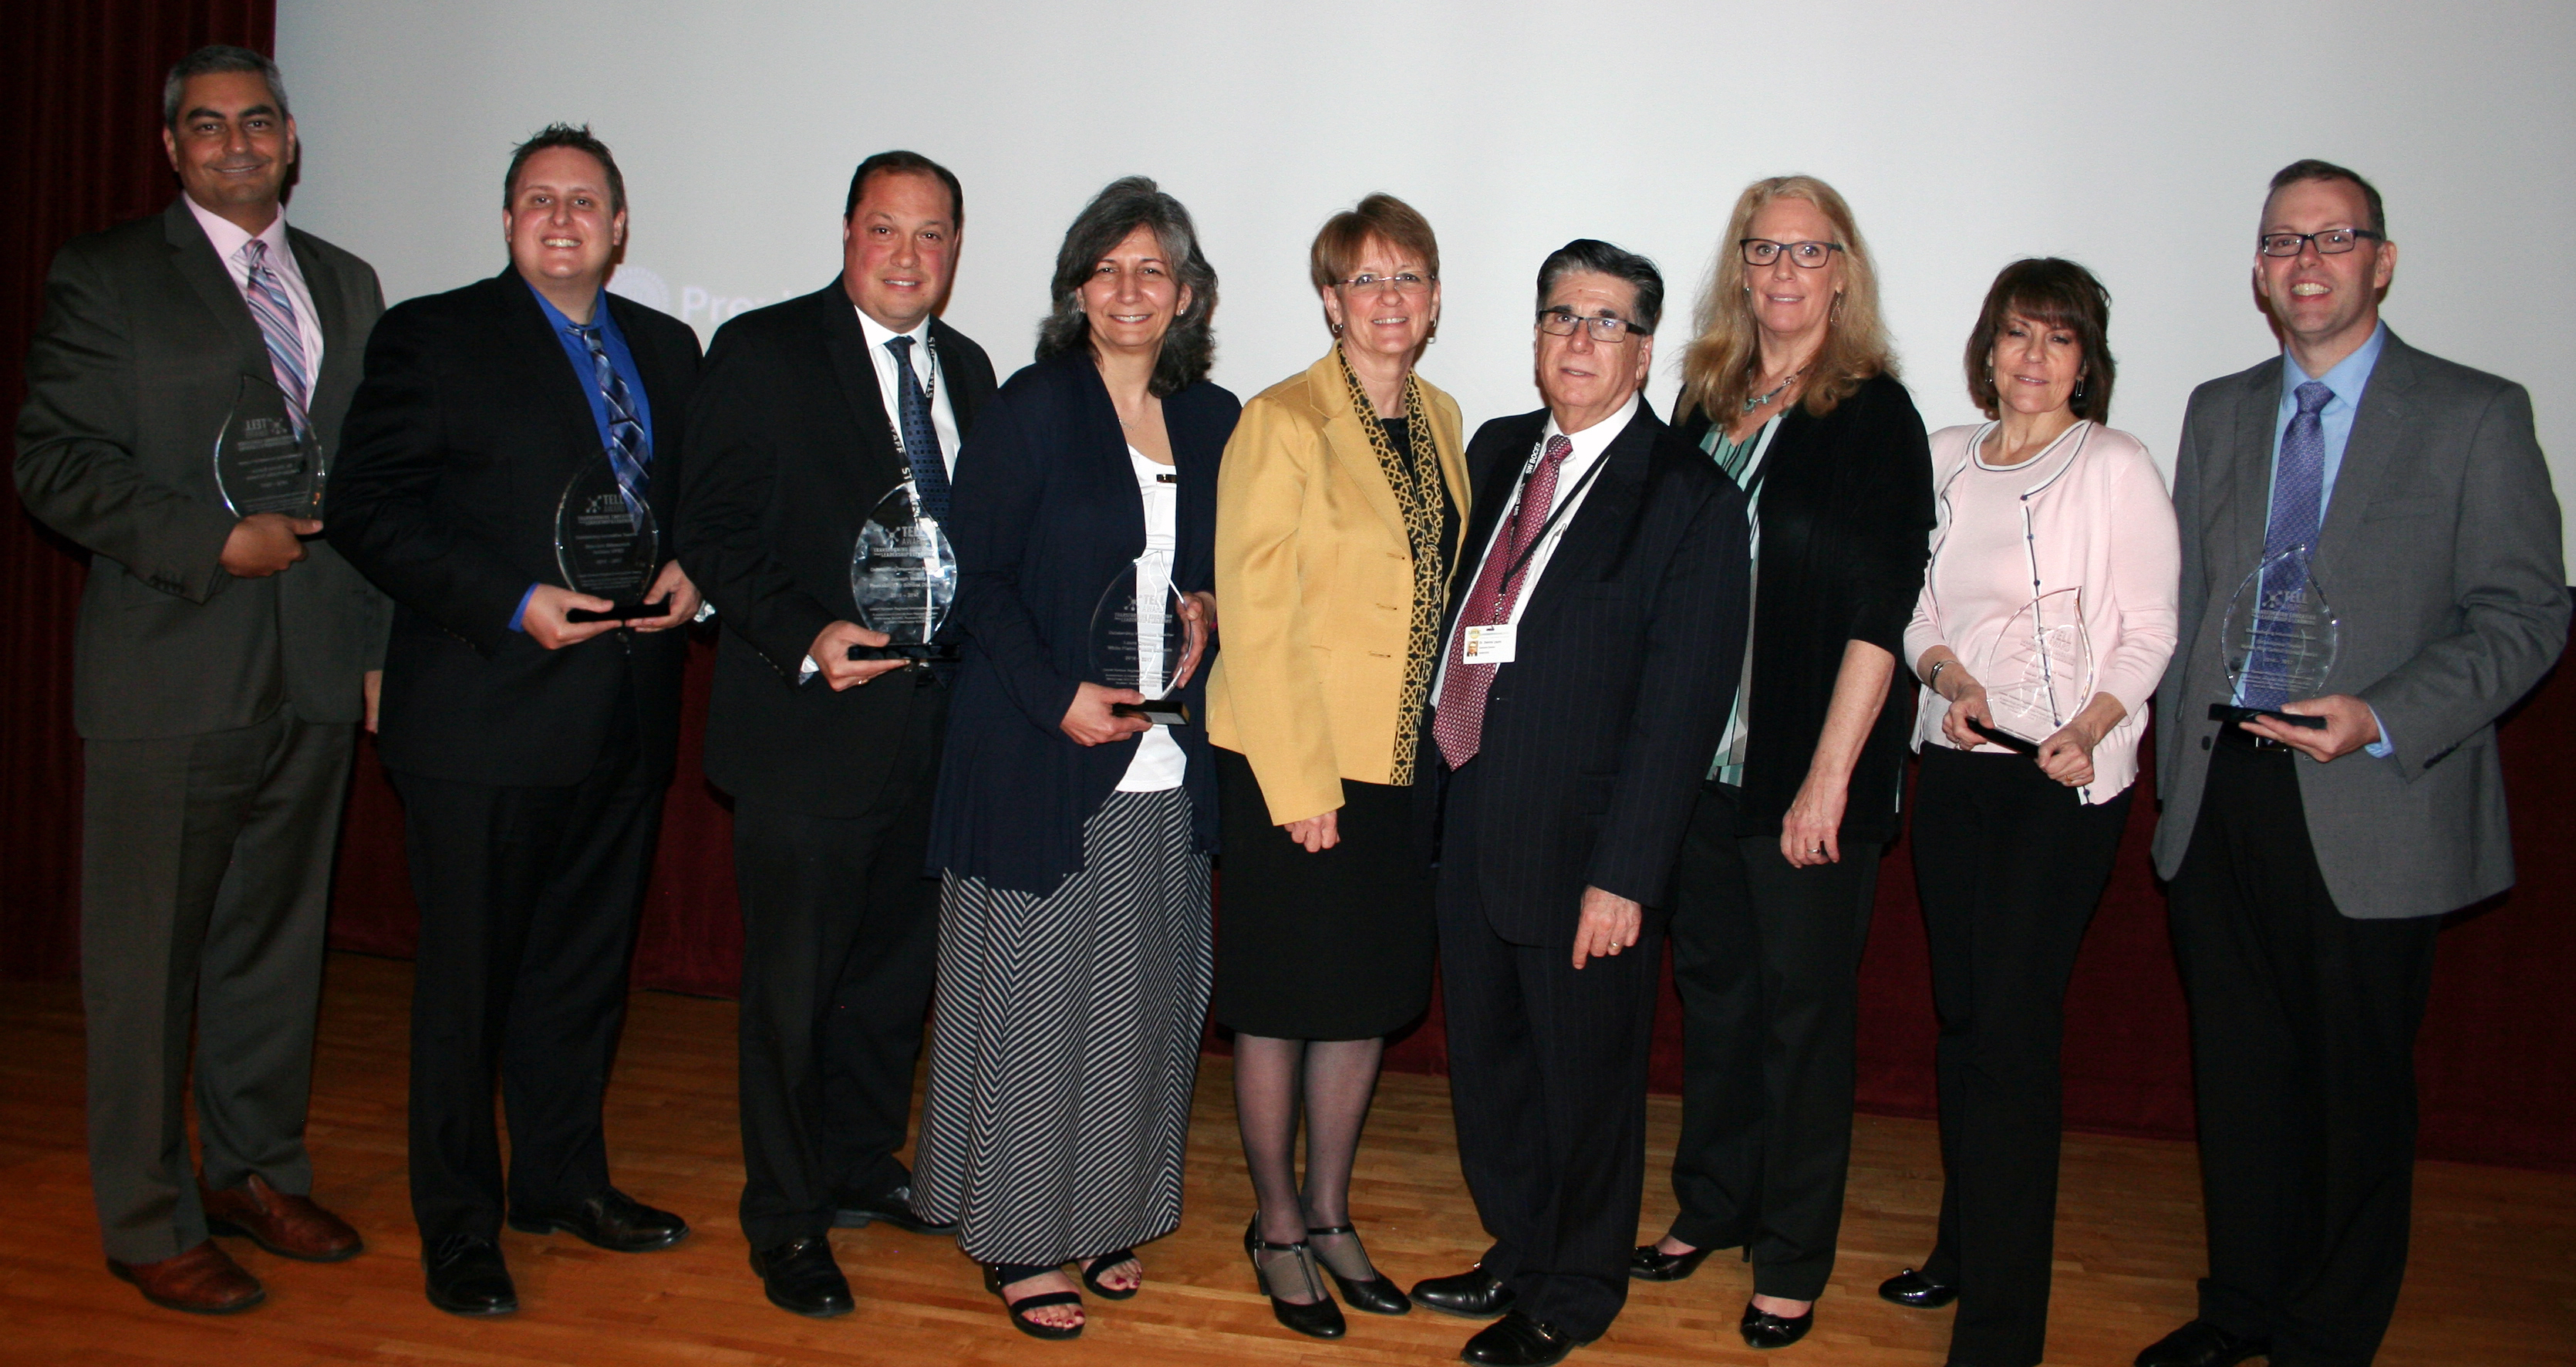 Recipients of LHRIC's 2015-2016 TELL Awards